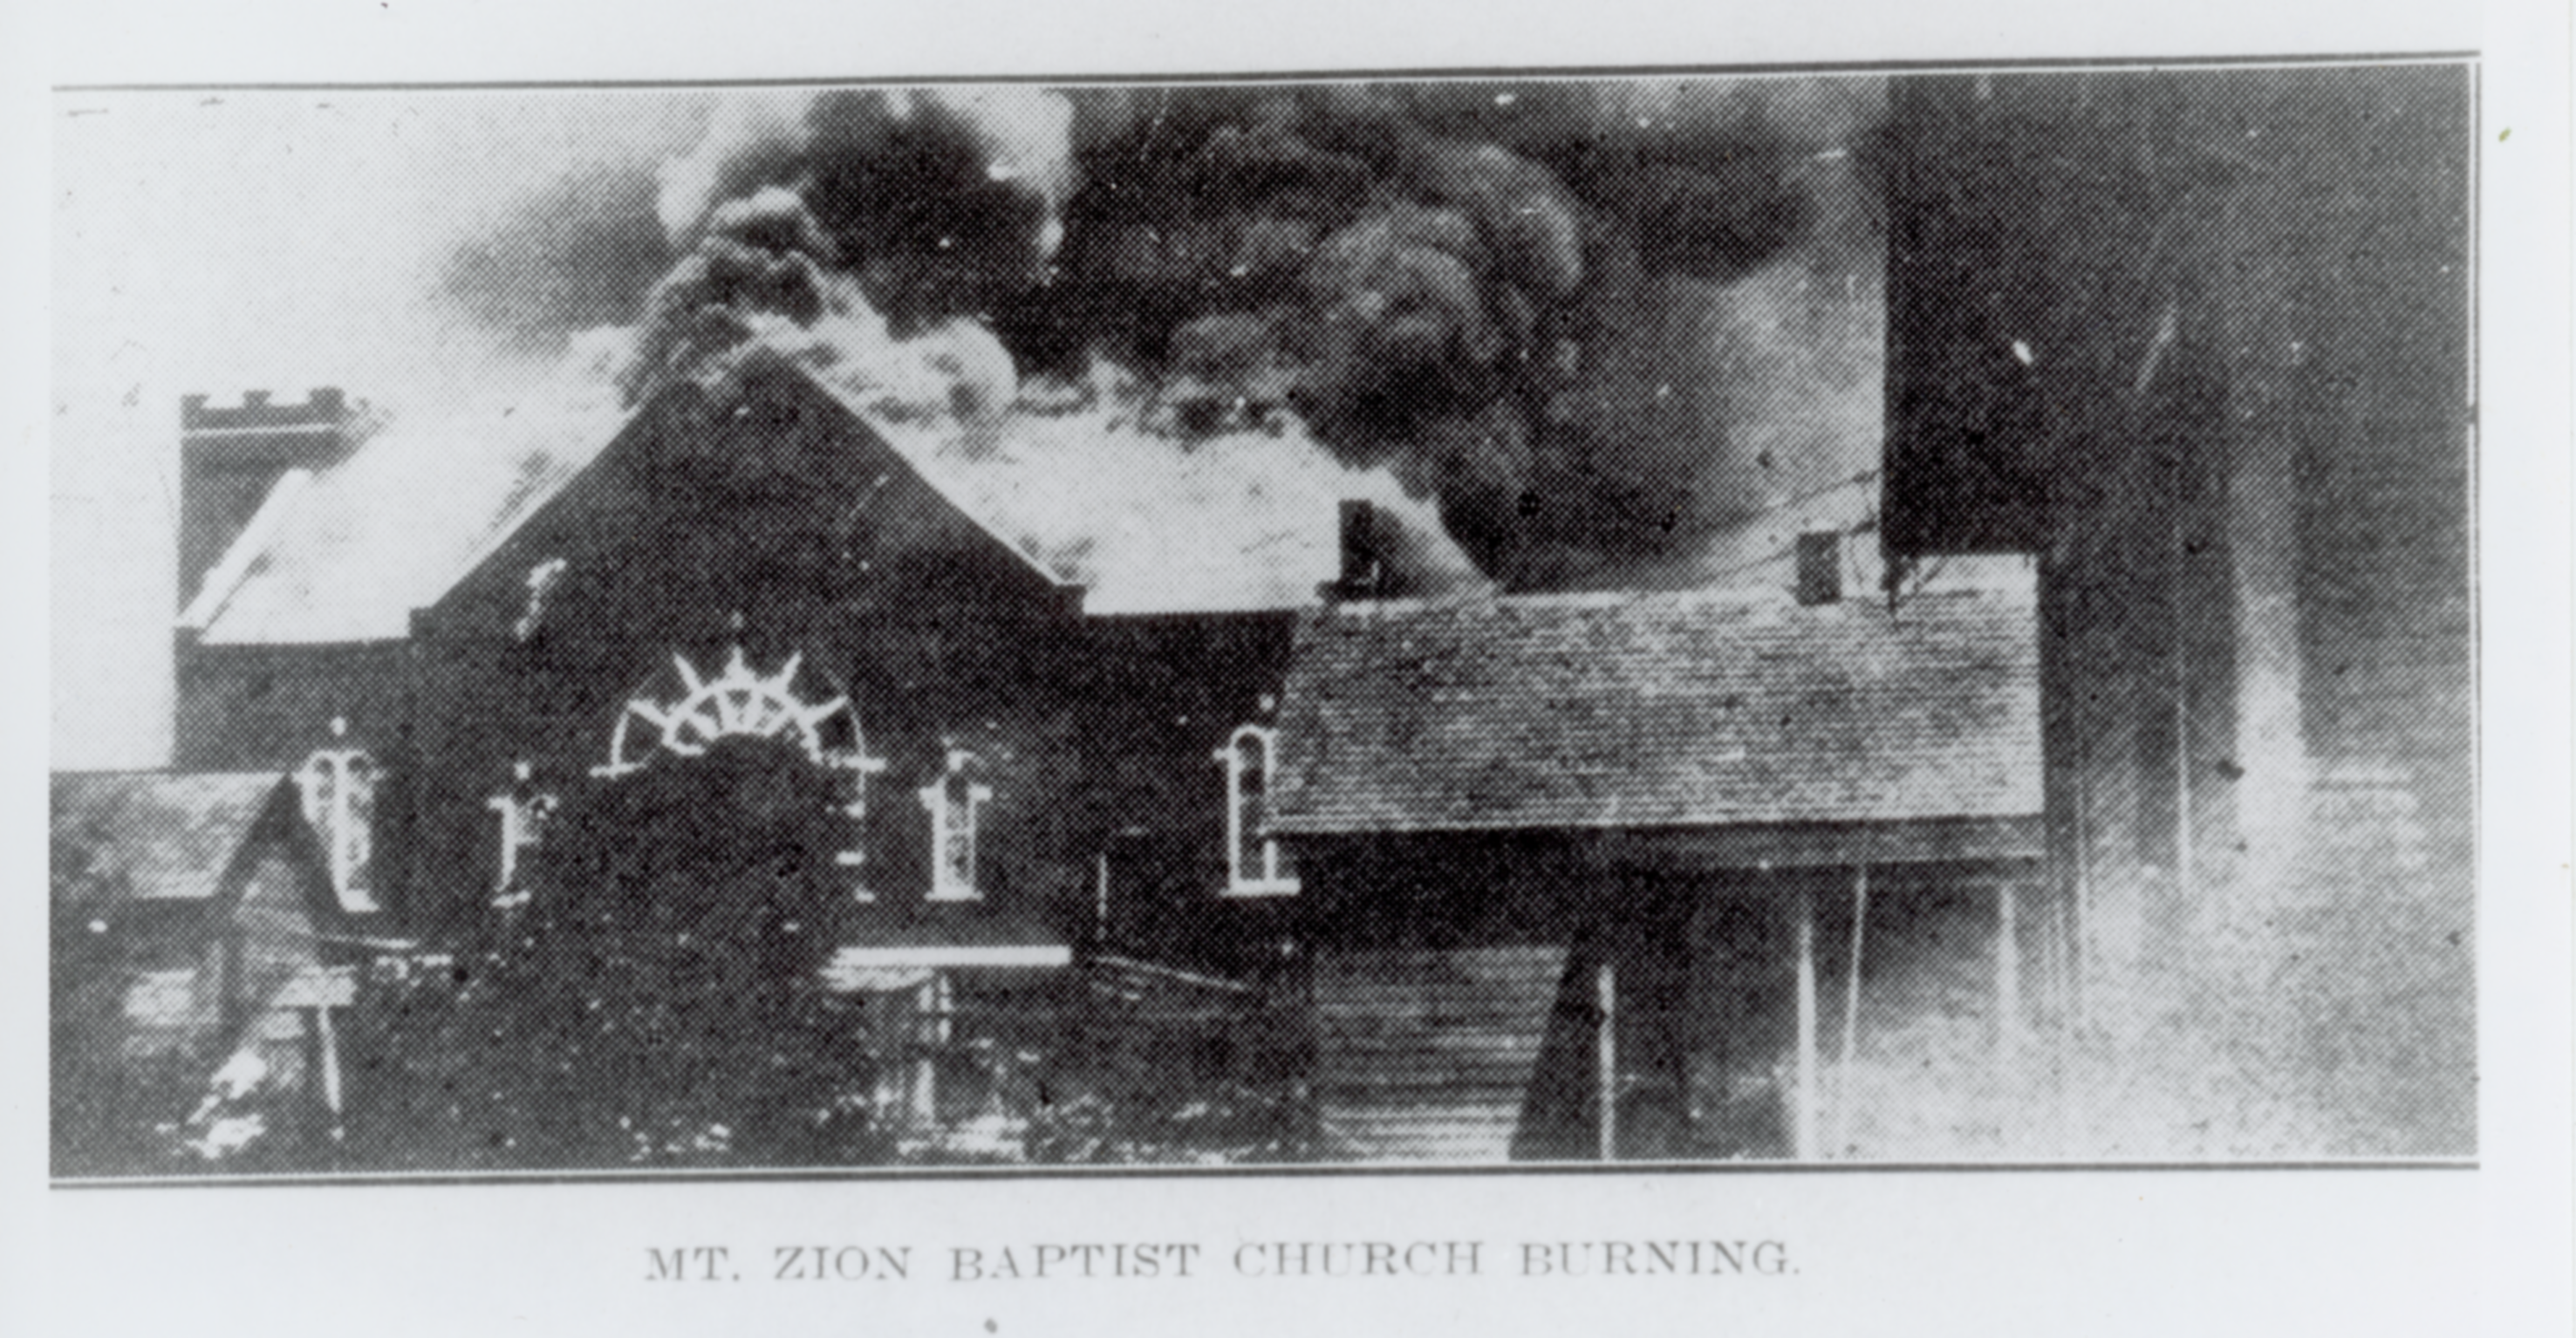 Mt. Zion Baptist Church on fire